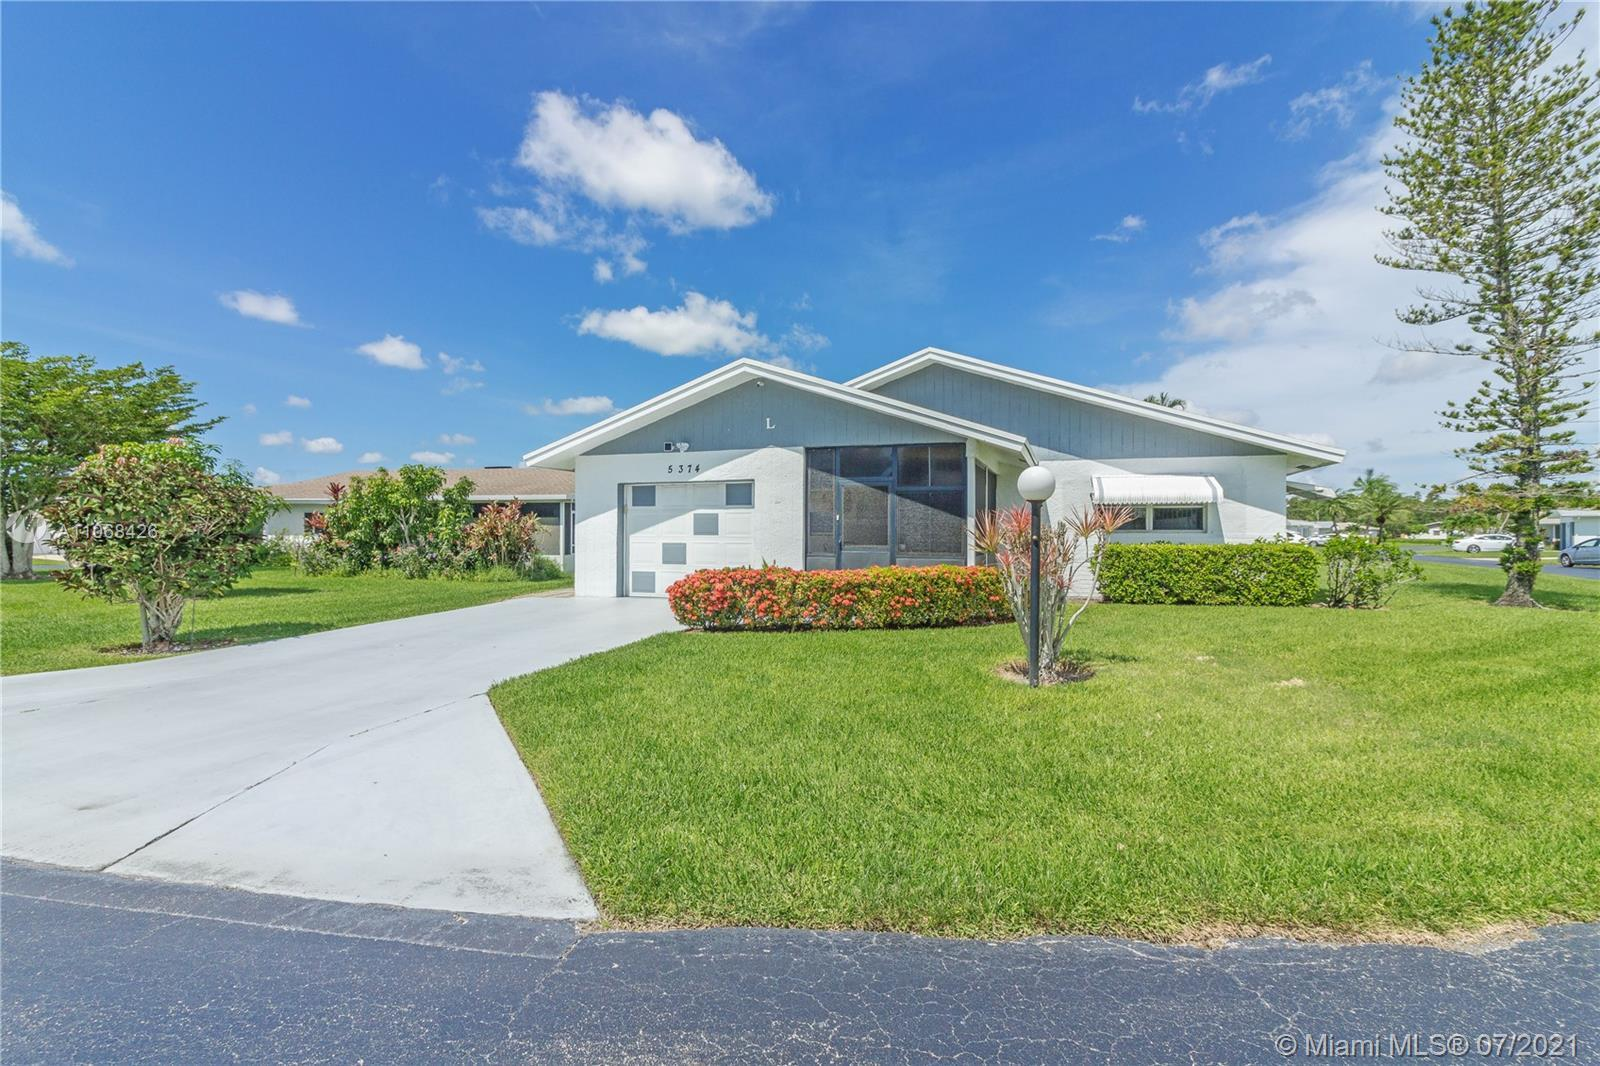 Beautiful Single Family home in the gated community of Cypress Lakes. Property sits on a corner lot